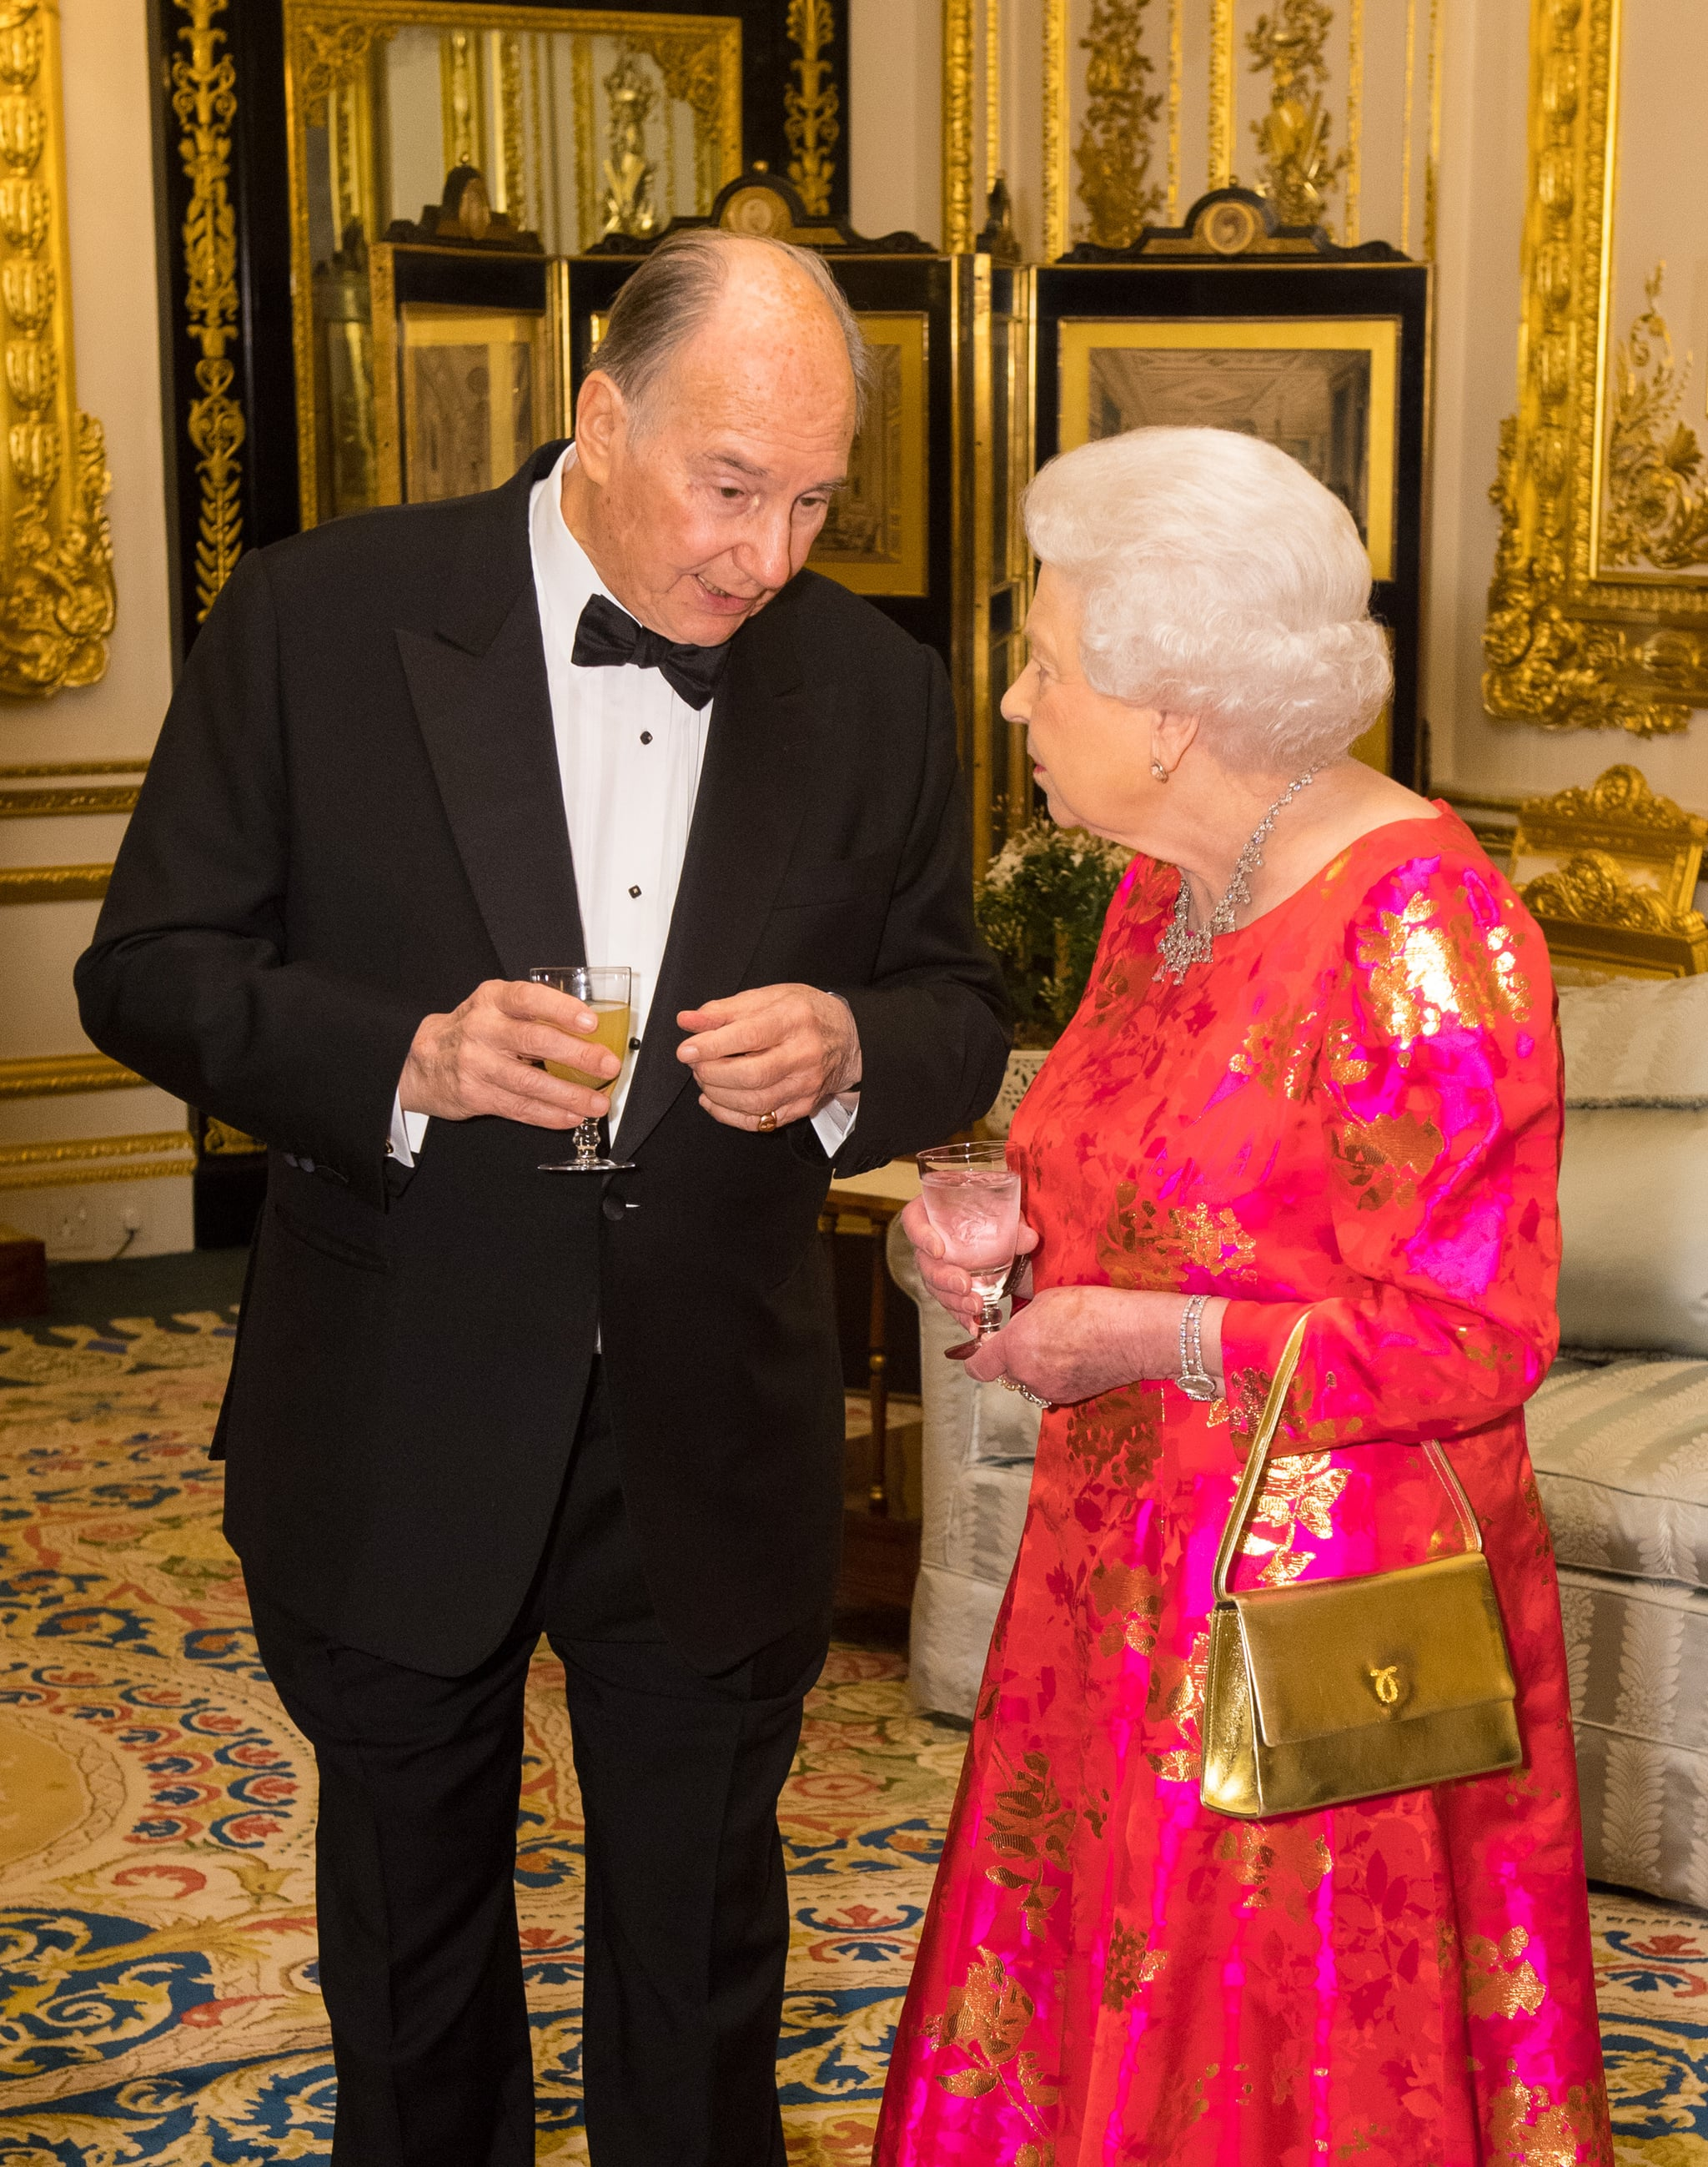 WINDSOR, ENGLAND - MARCH 8: Queen Elizabeth II and Prince Karim Aga Khan IV, prior to dinner at Windsor Castle on March 8, 2018 in Windsor, England. Queen Elizabeth II is hosting  private dinner in honour of the diamond jubilee of his leadership as Imam of the Shia Ismaili Muslim Community. (Photo by Dominic Lipinski-WPA Pool/Getty Images)